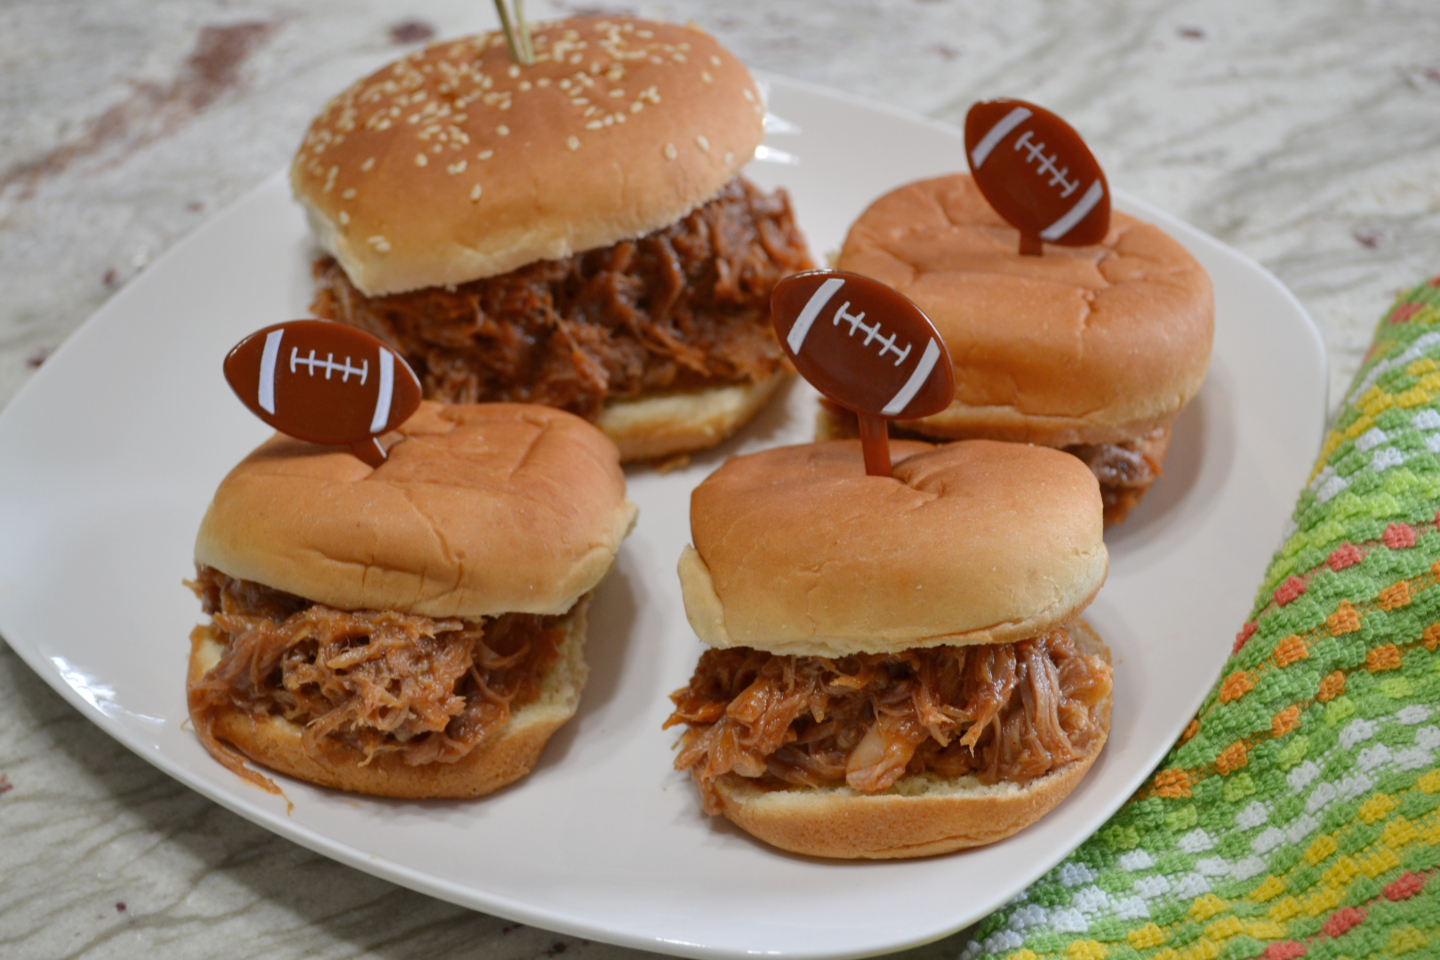 These Pulled Pork Sliders are perfect for any get together. Pork butt rubbed with a homemade rub,cooked in a crockpot, and covered with a homemade BBQ sauce.